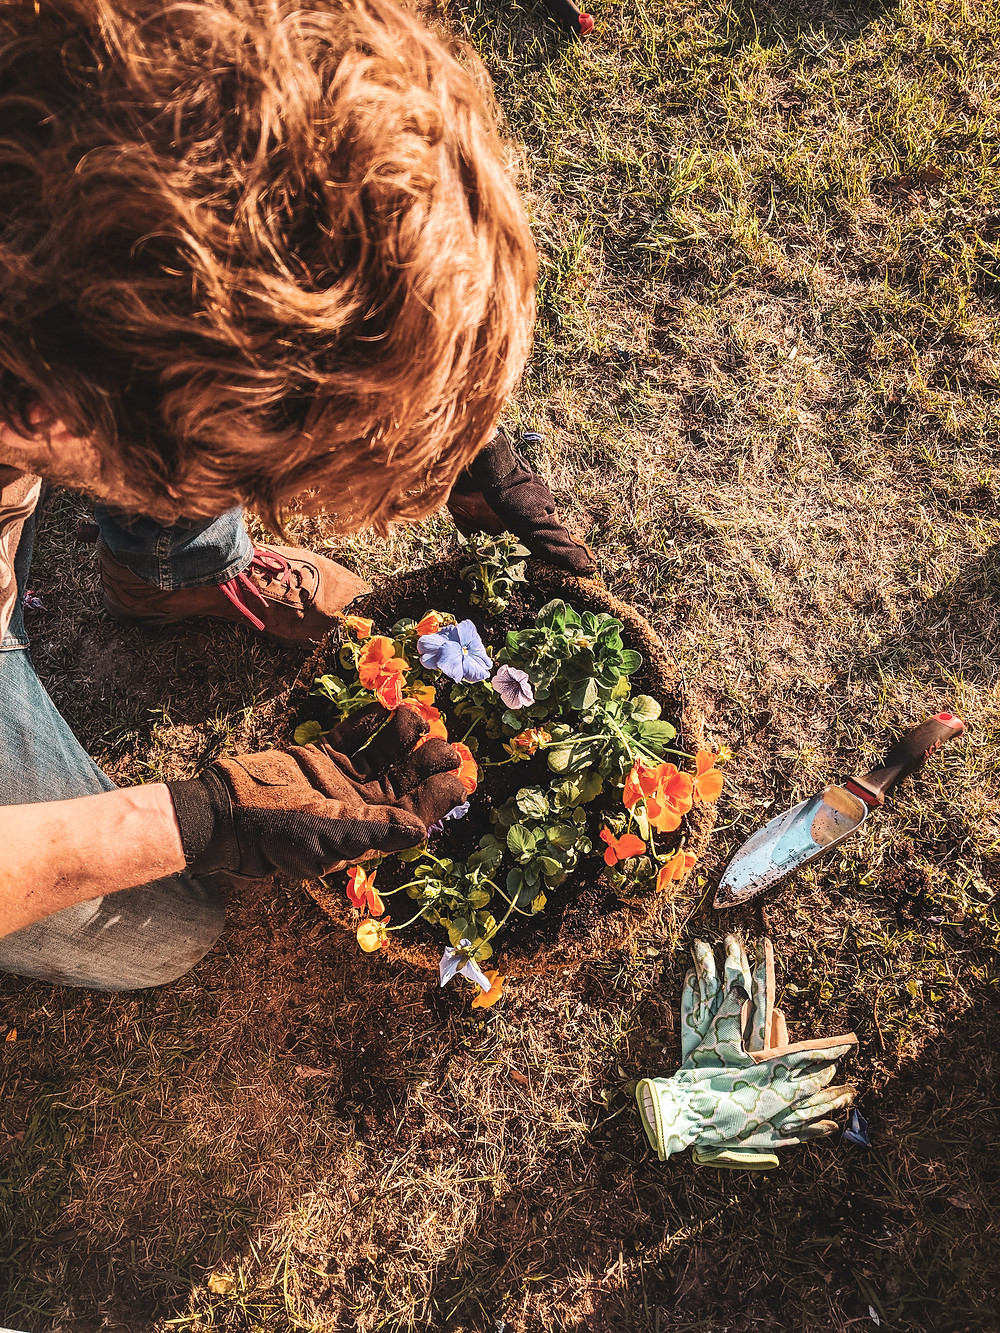 Scott planting flowers. We've been trying to find ways to slow down more and more lately.